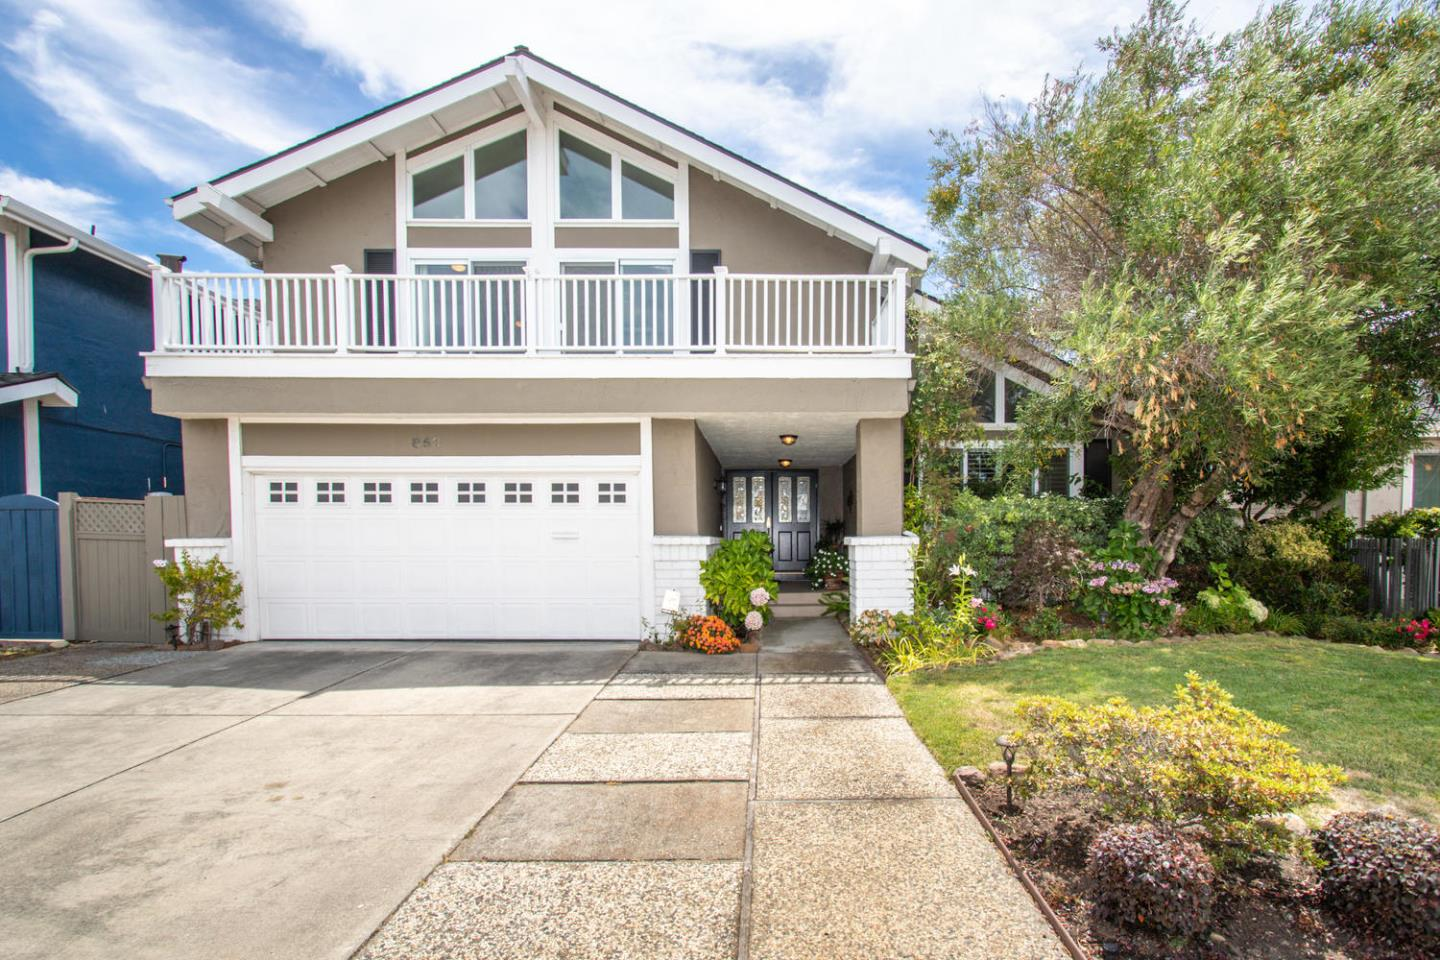 Welcome to this stunning four bedroom, two and one-half bath home located in one of Foster City's desirable neighborhoods.  Downstairs foyer opens onto a formal living room with fireplace, vaulted ceilings and spacious dining room. The gourmet eat-in kitchen features professional stainless steel appliances, granite counter top and plenty of cabinet space.  Adjoining family room with wood burning fireplace, custom built-in cabinetry and sliding glass doors opening to a private outdoor patio ideal for alfresco dining.  Upstairs master bedroom suite opens out to a large balcony, and expansive master bathroom.  Two additional bedrooms, convenient home office space complete with custom built-in desk, cabinets and Murphy bed.  Conveniently located near award-winning schools, public parks, and bike paths, with easy access to Highways 101 and 92. From the inside out, this is truly your dream home !  Virtual walk-thru:  https://youtu.be/LG5NIUipqk4